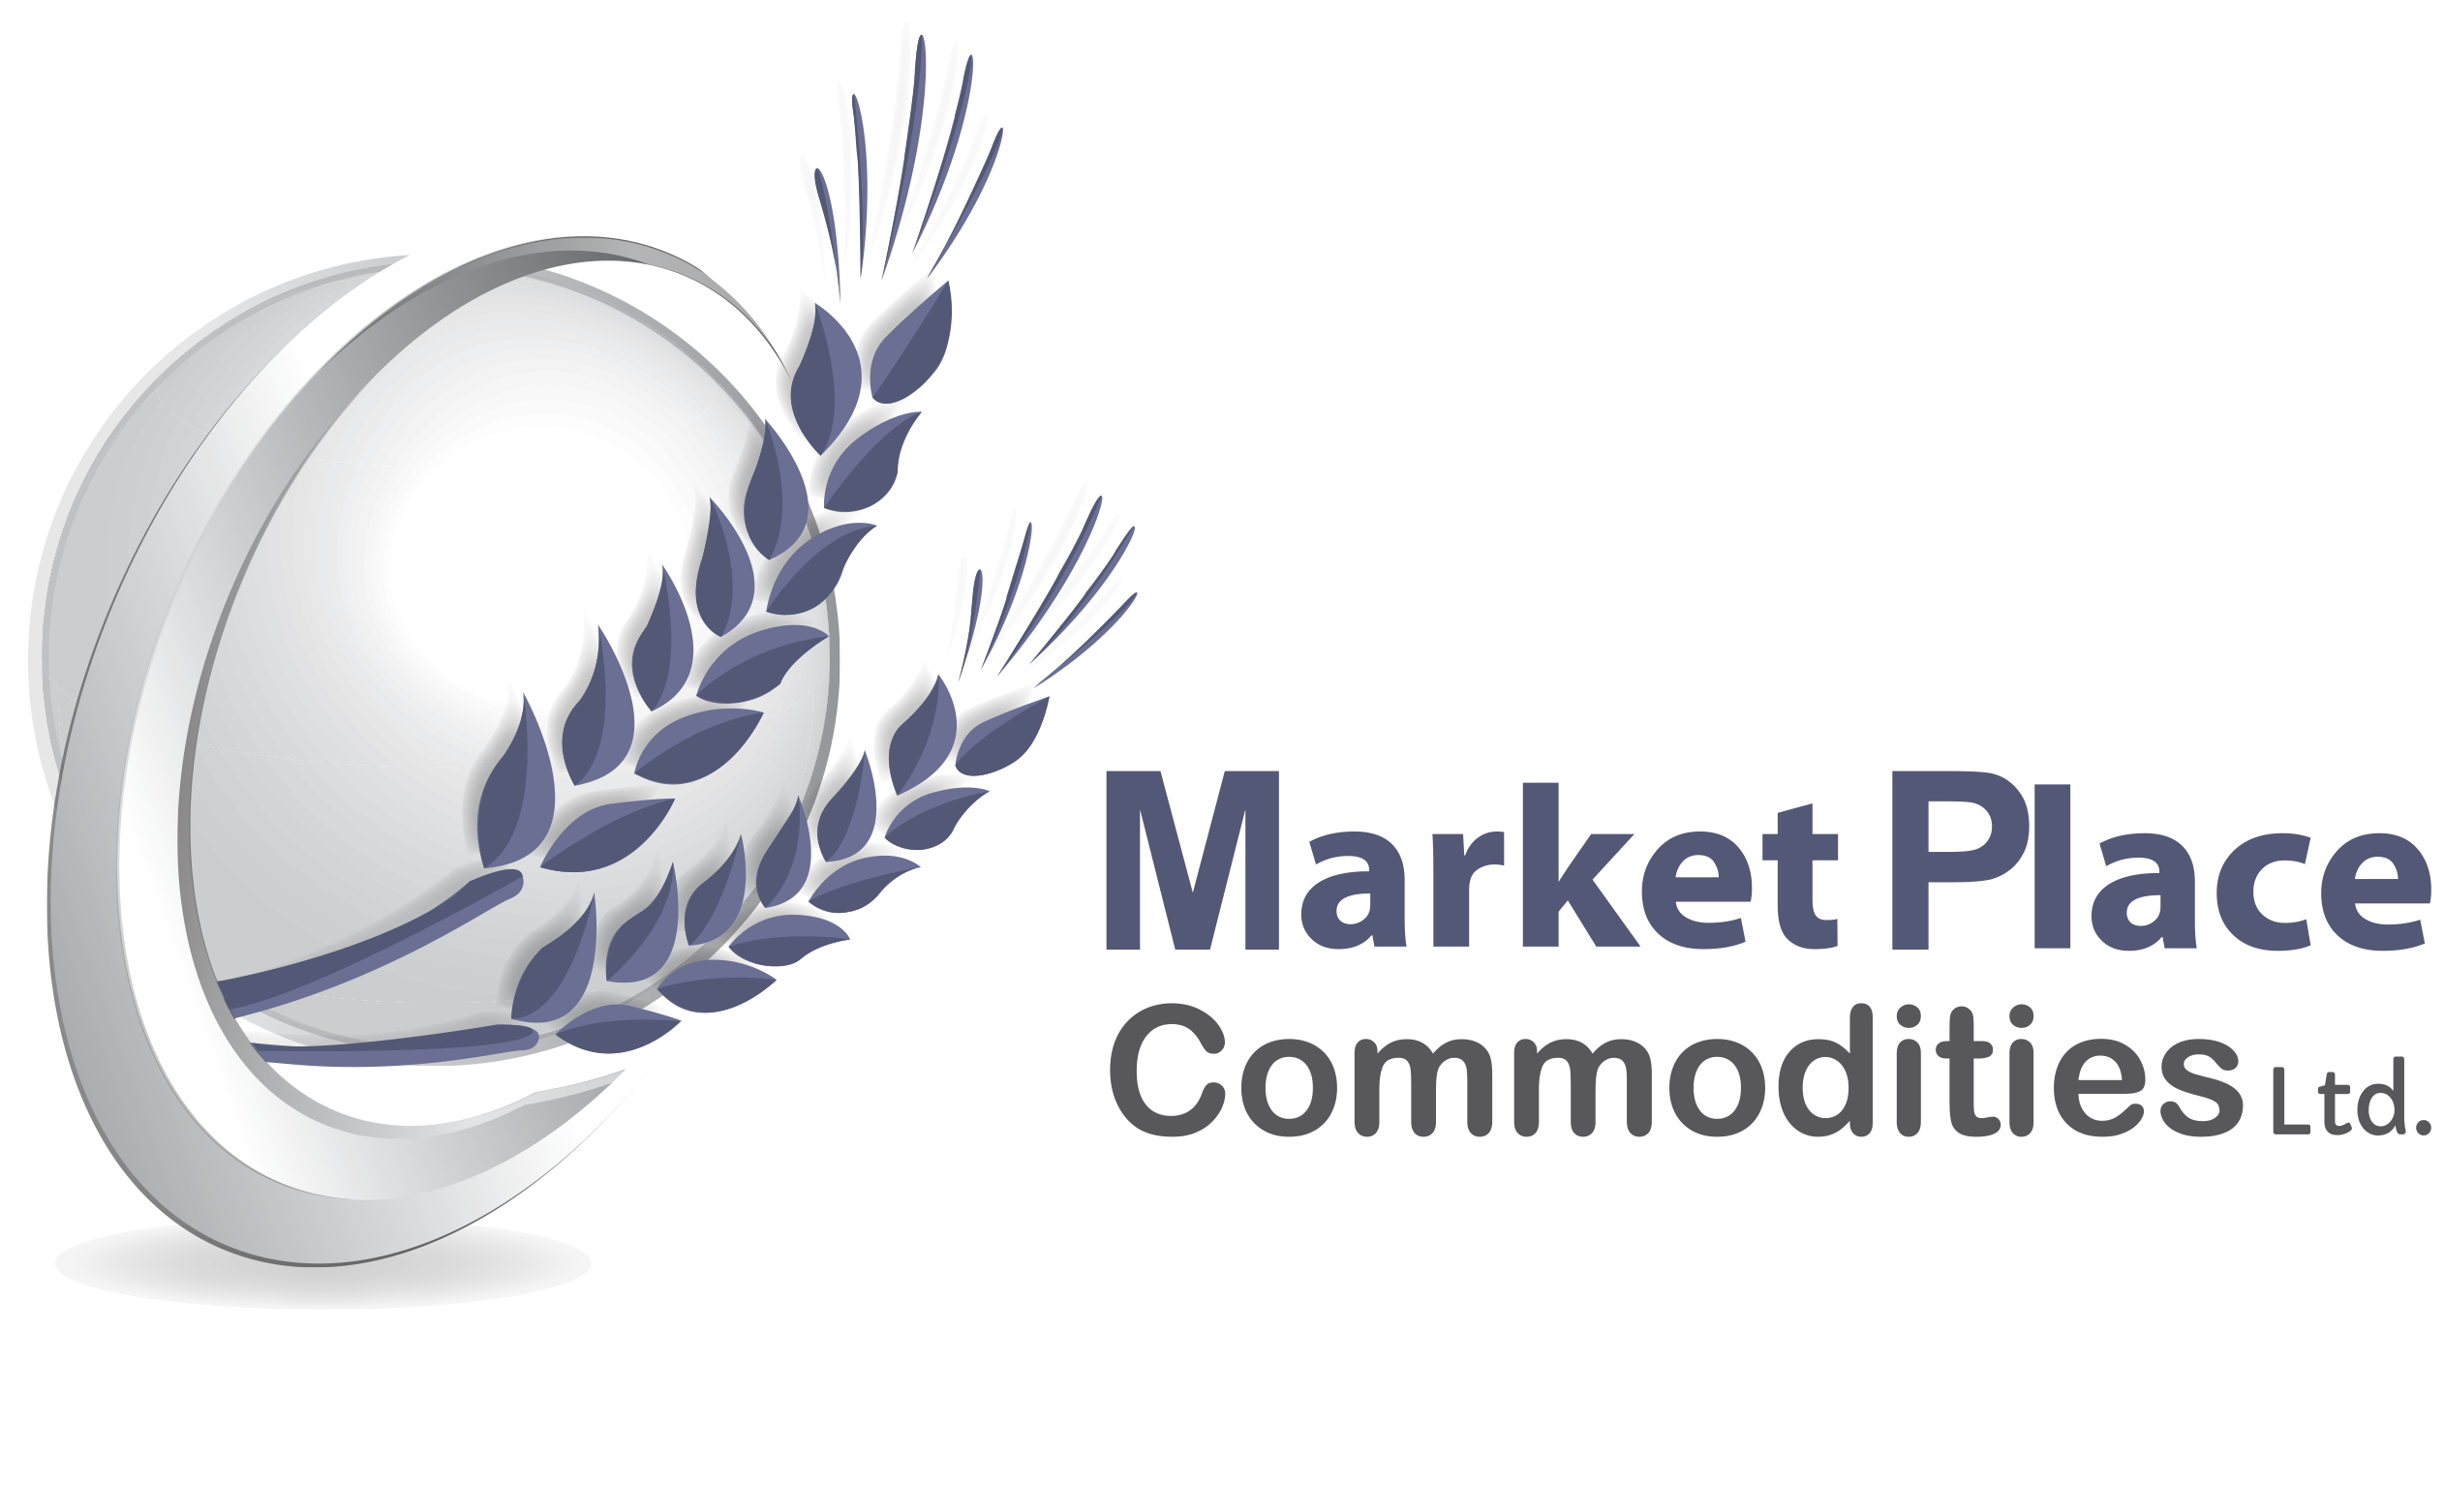 Market Place Commodities Ltd.